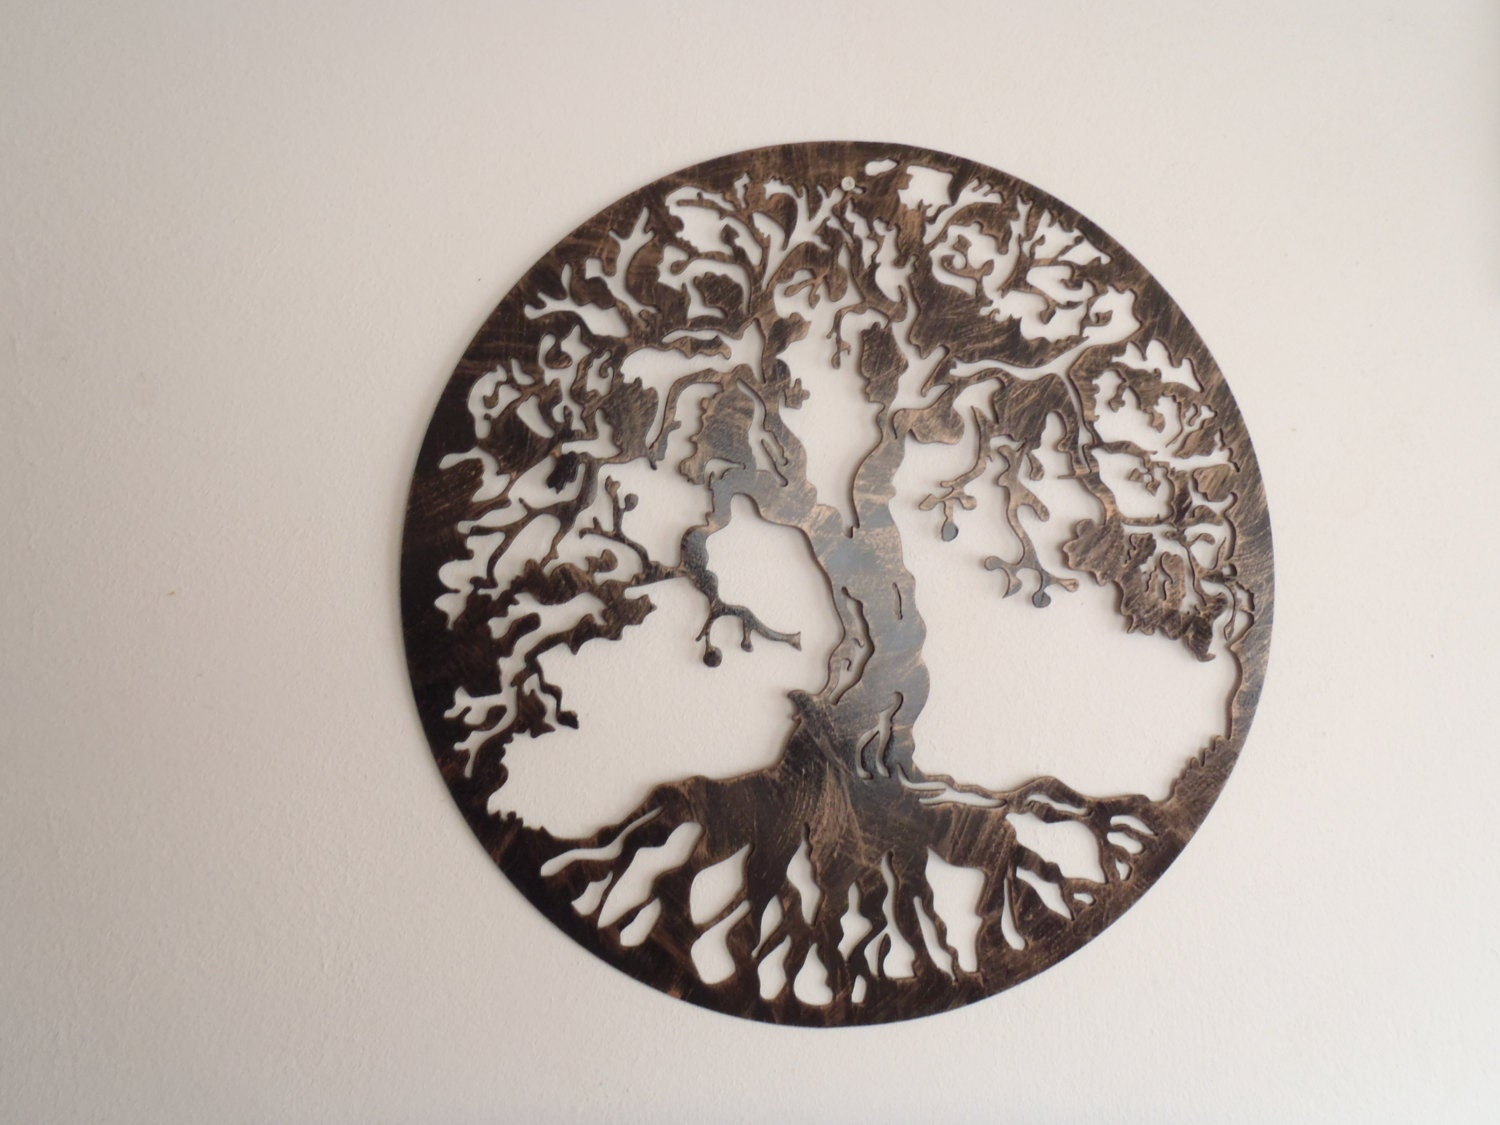 Tree Of Life Antique Look Wall Decor Metal Art